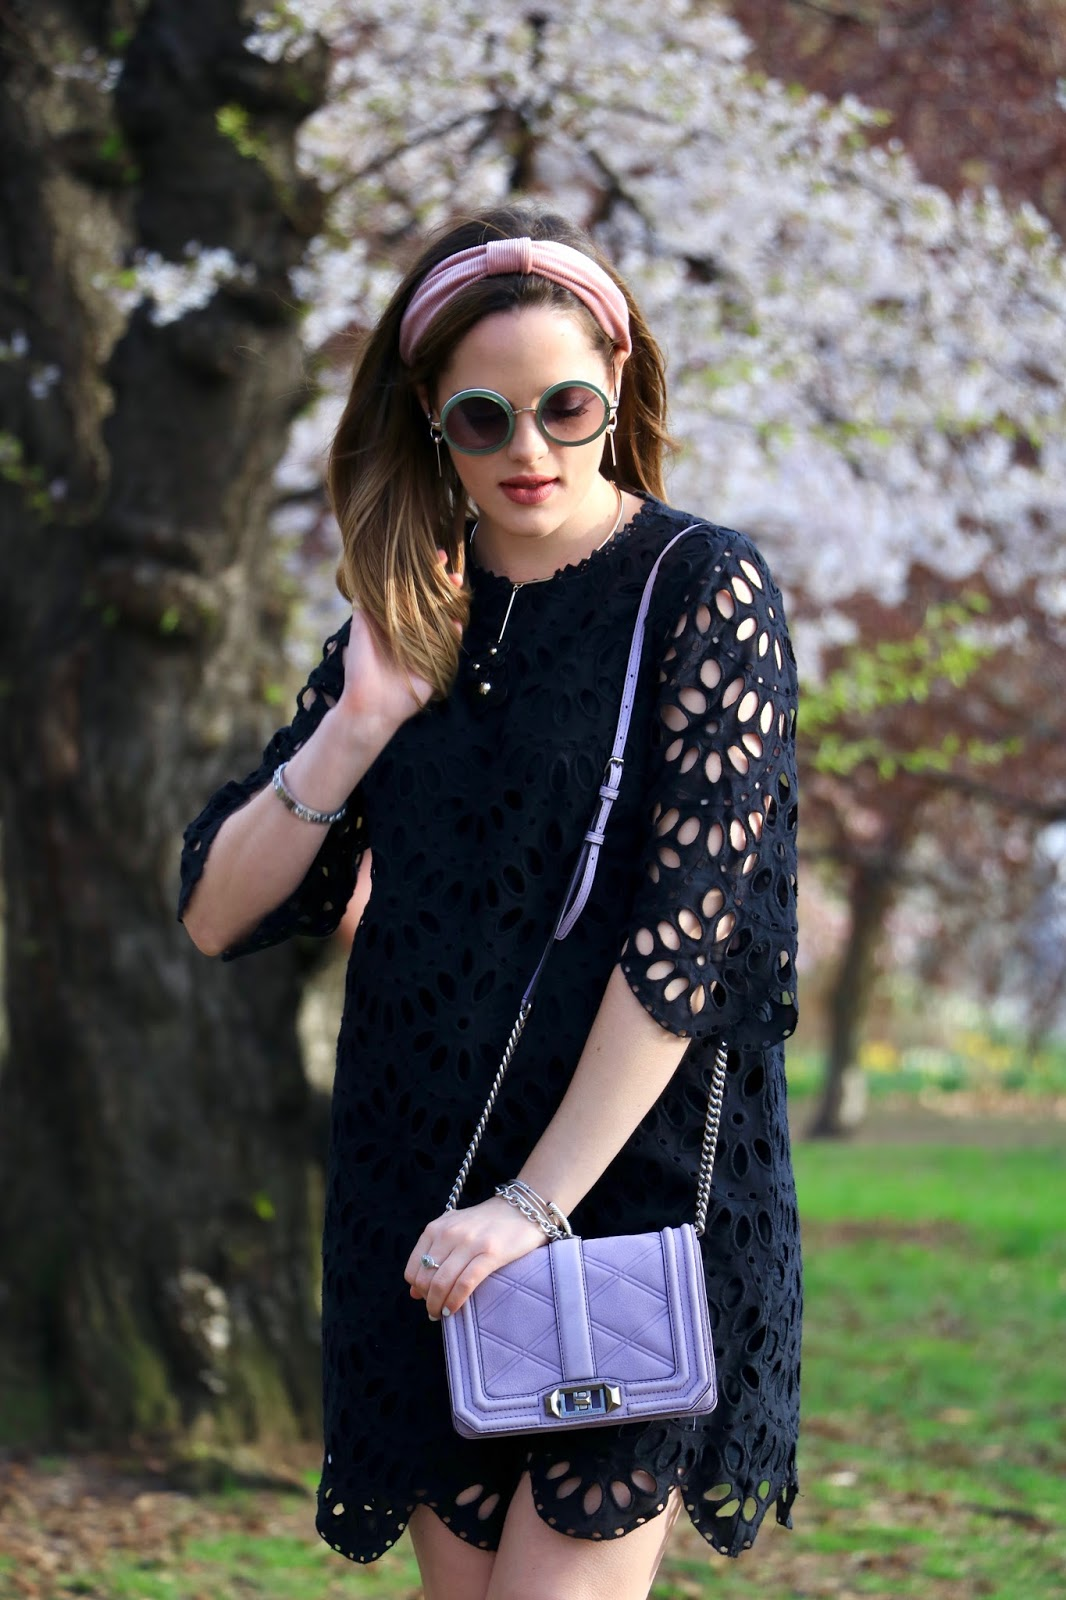 Nyc fashion blogger Kathleen Harper wearing a black lace spring dress